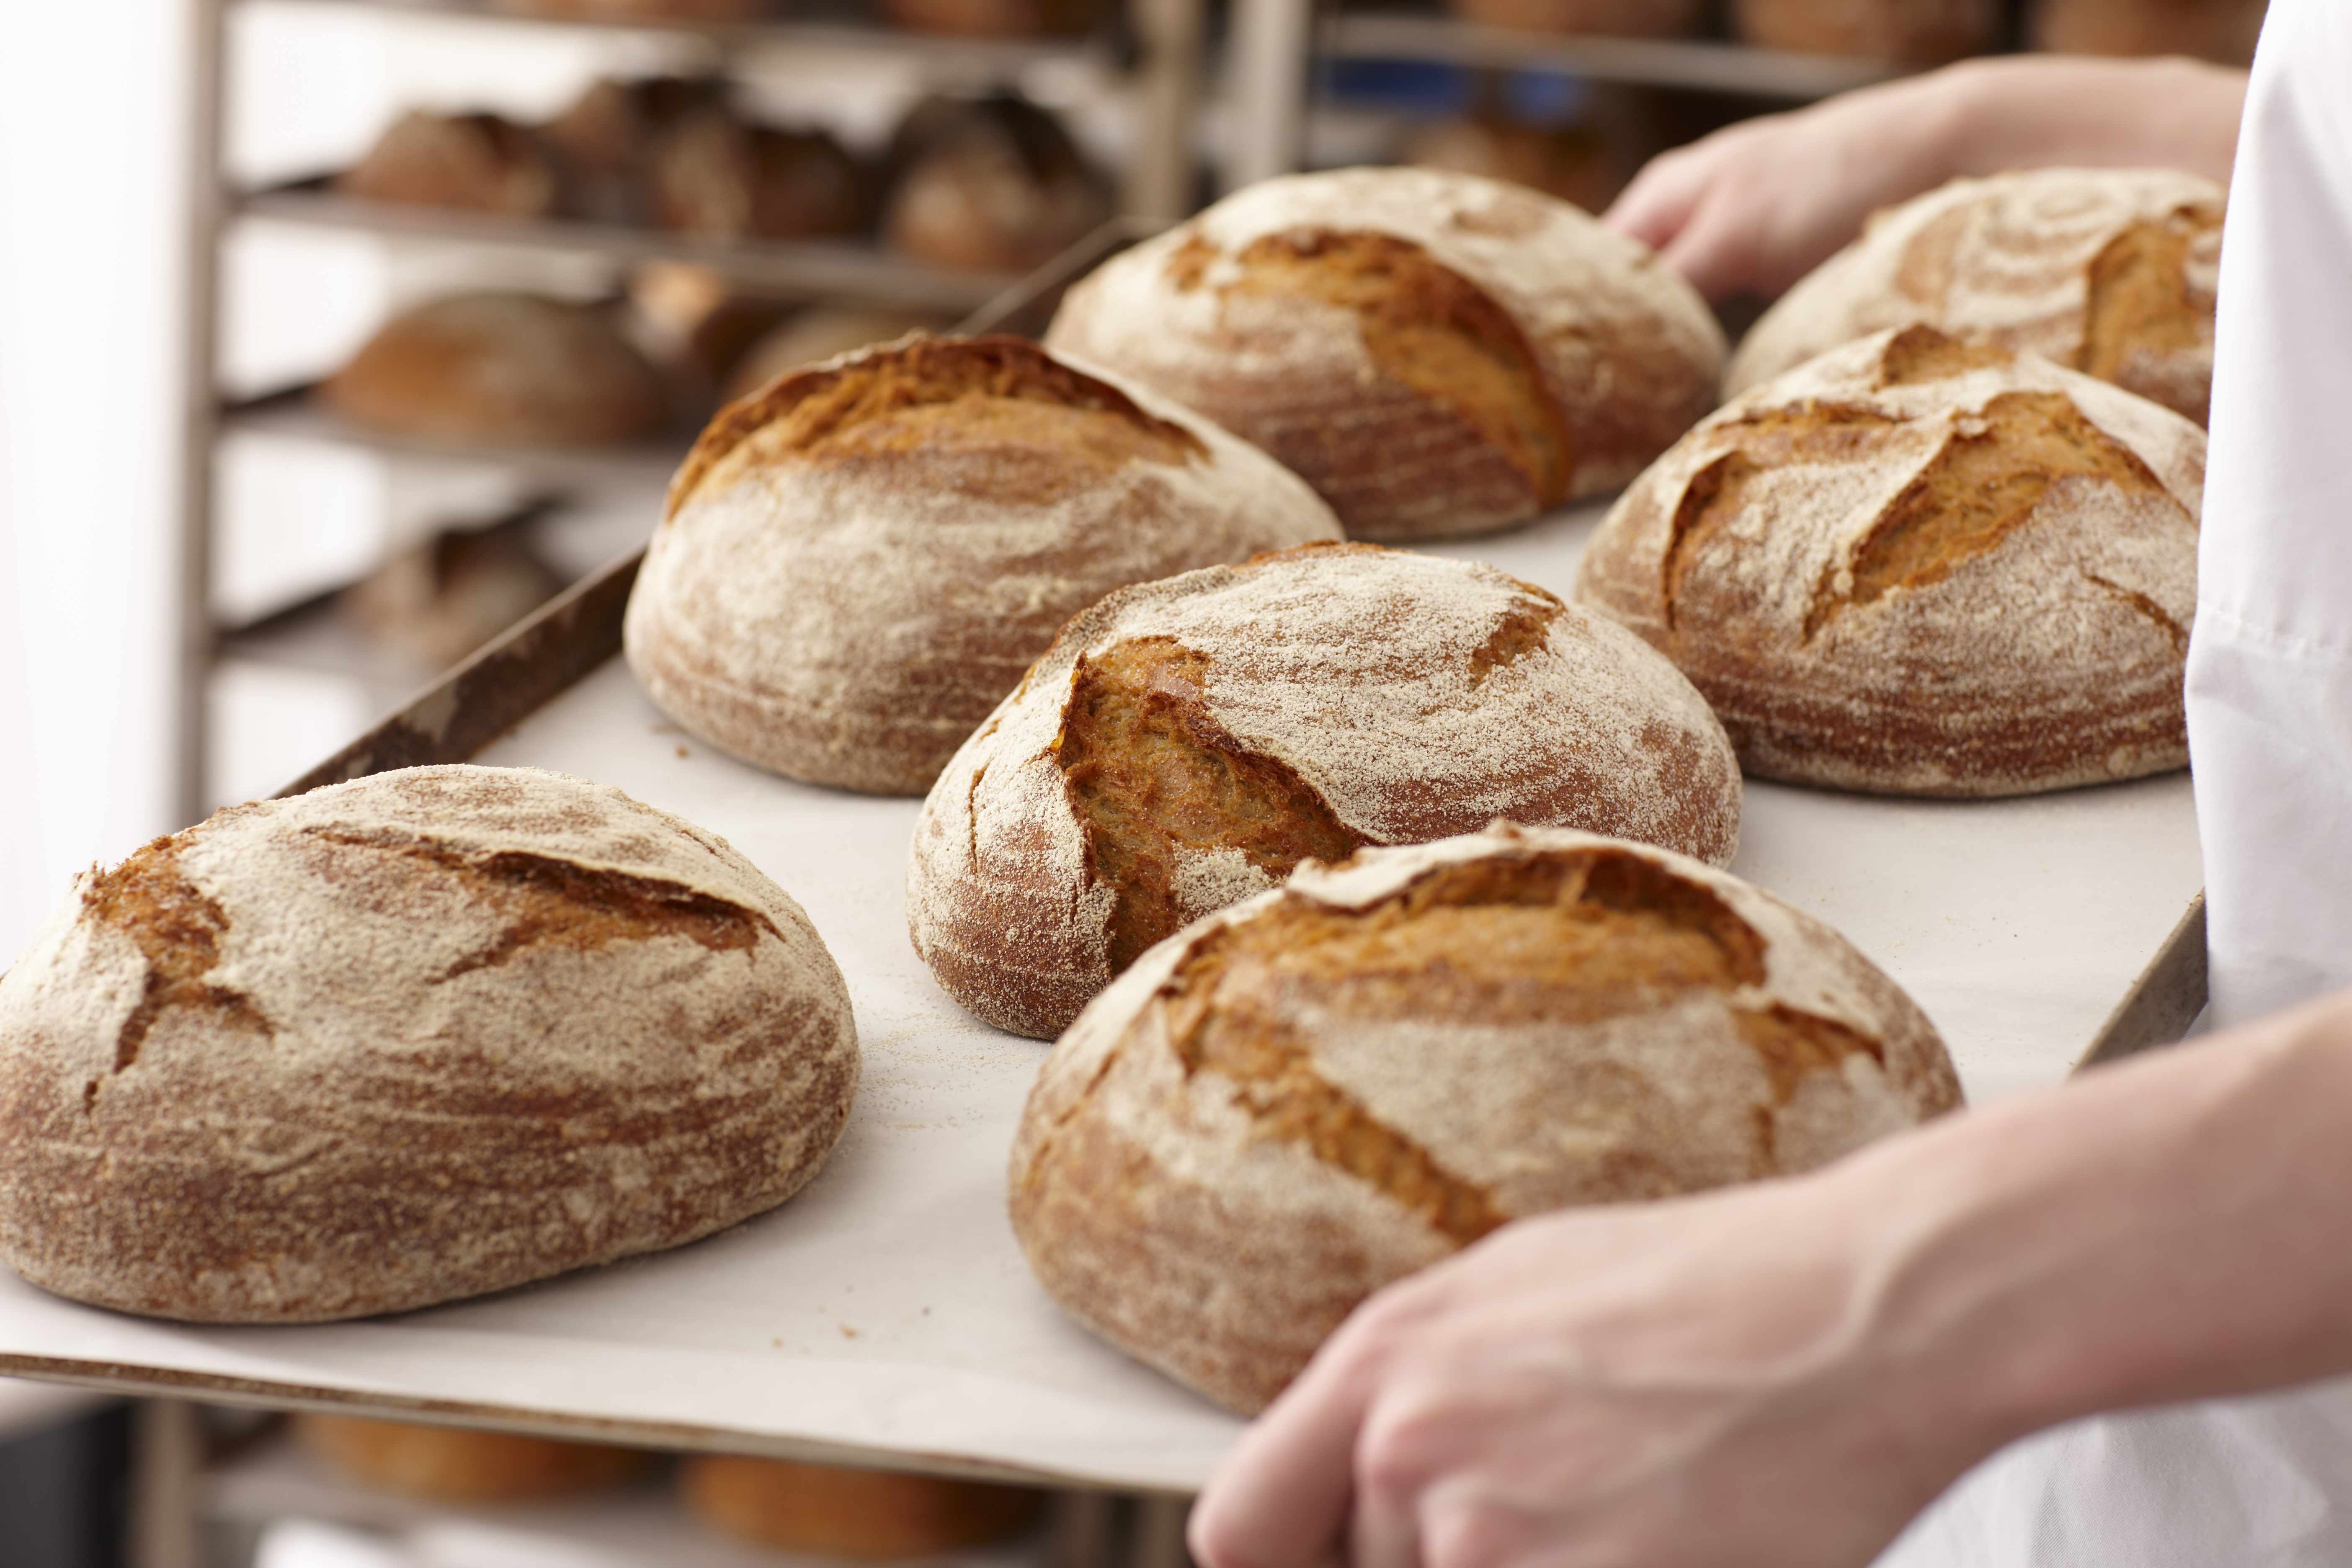 What Is Gluten? And Why Does Everyone Avoid It?